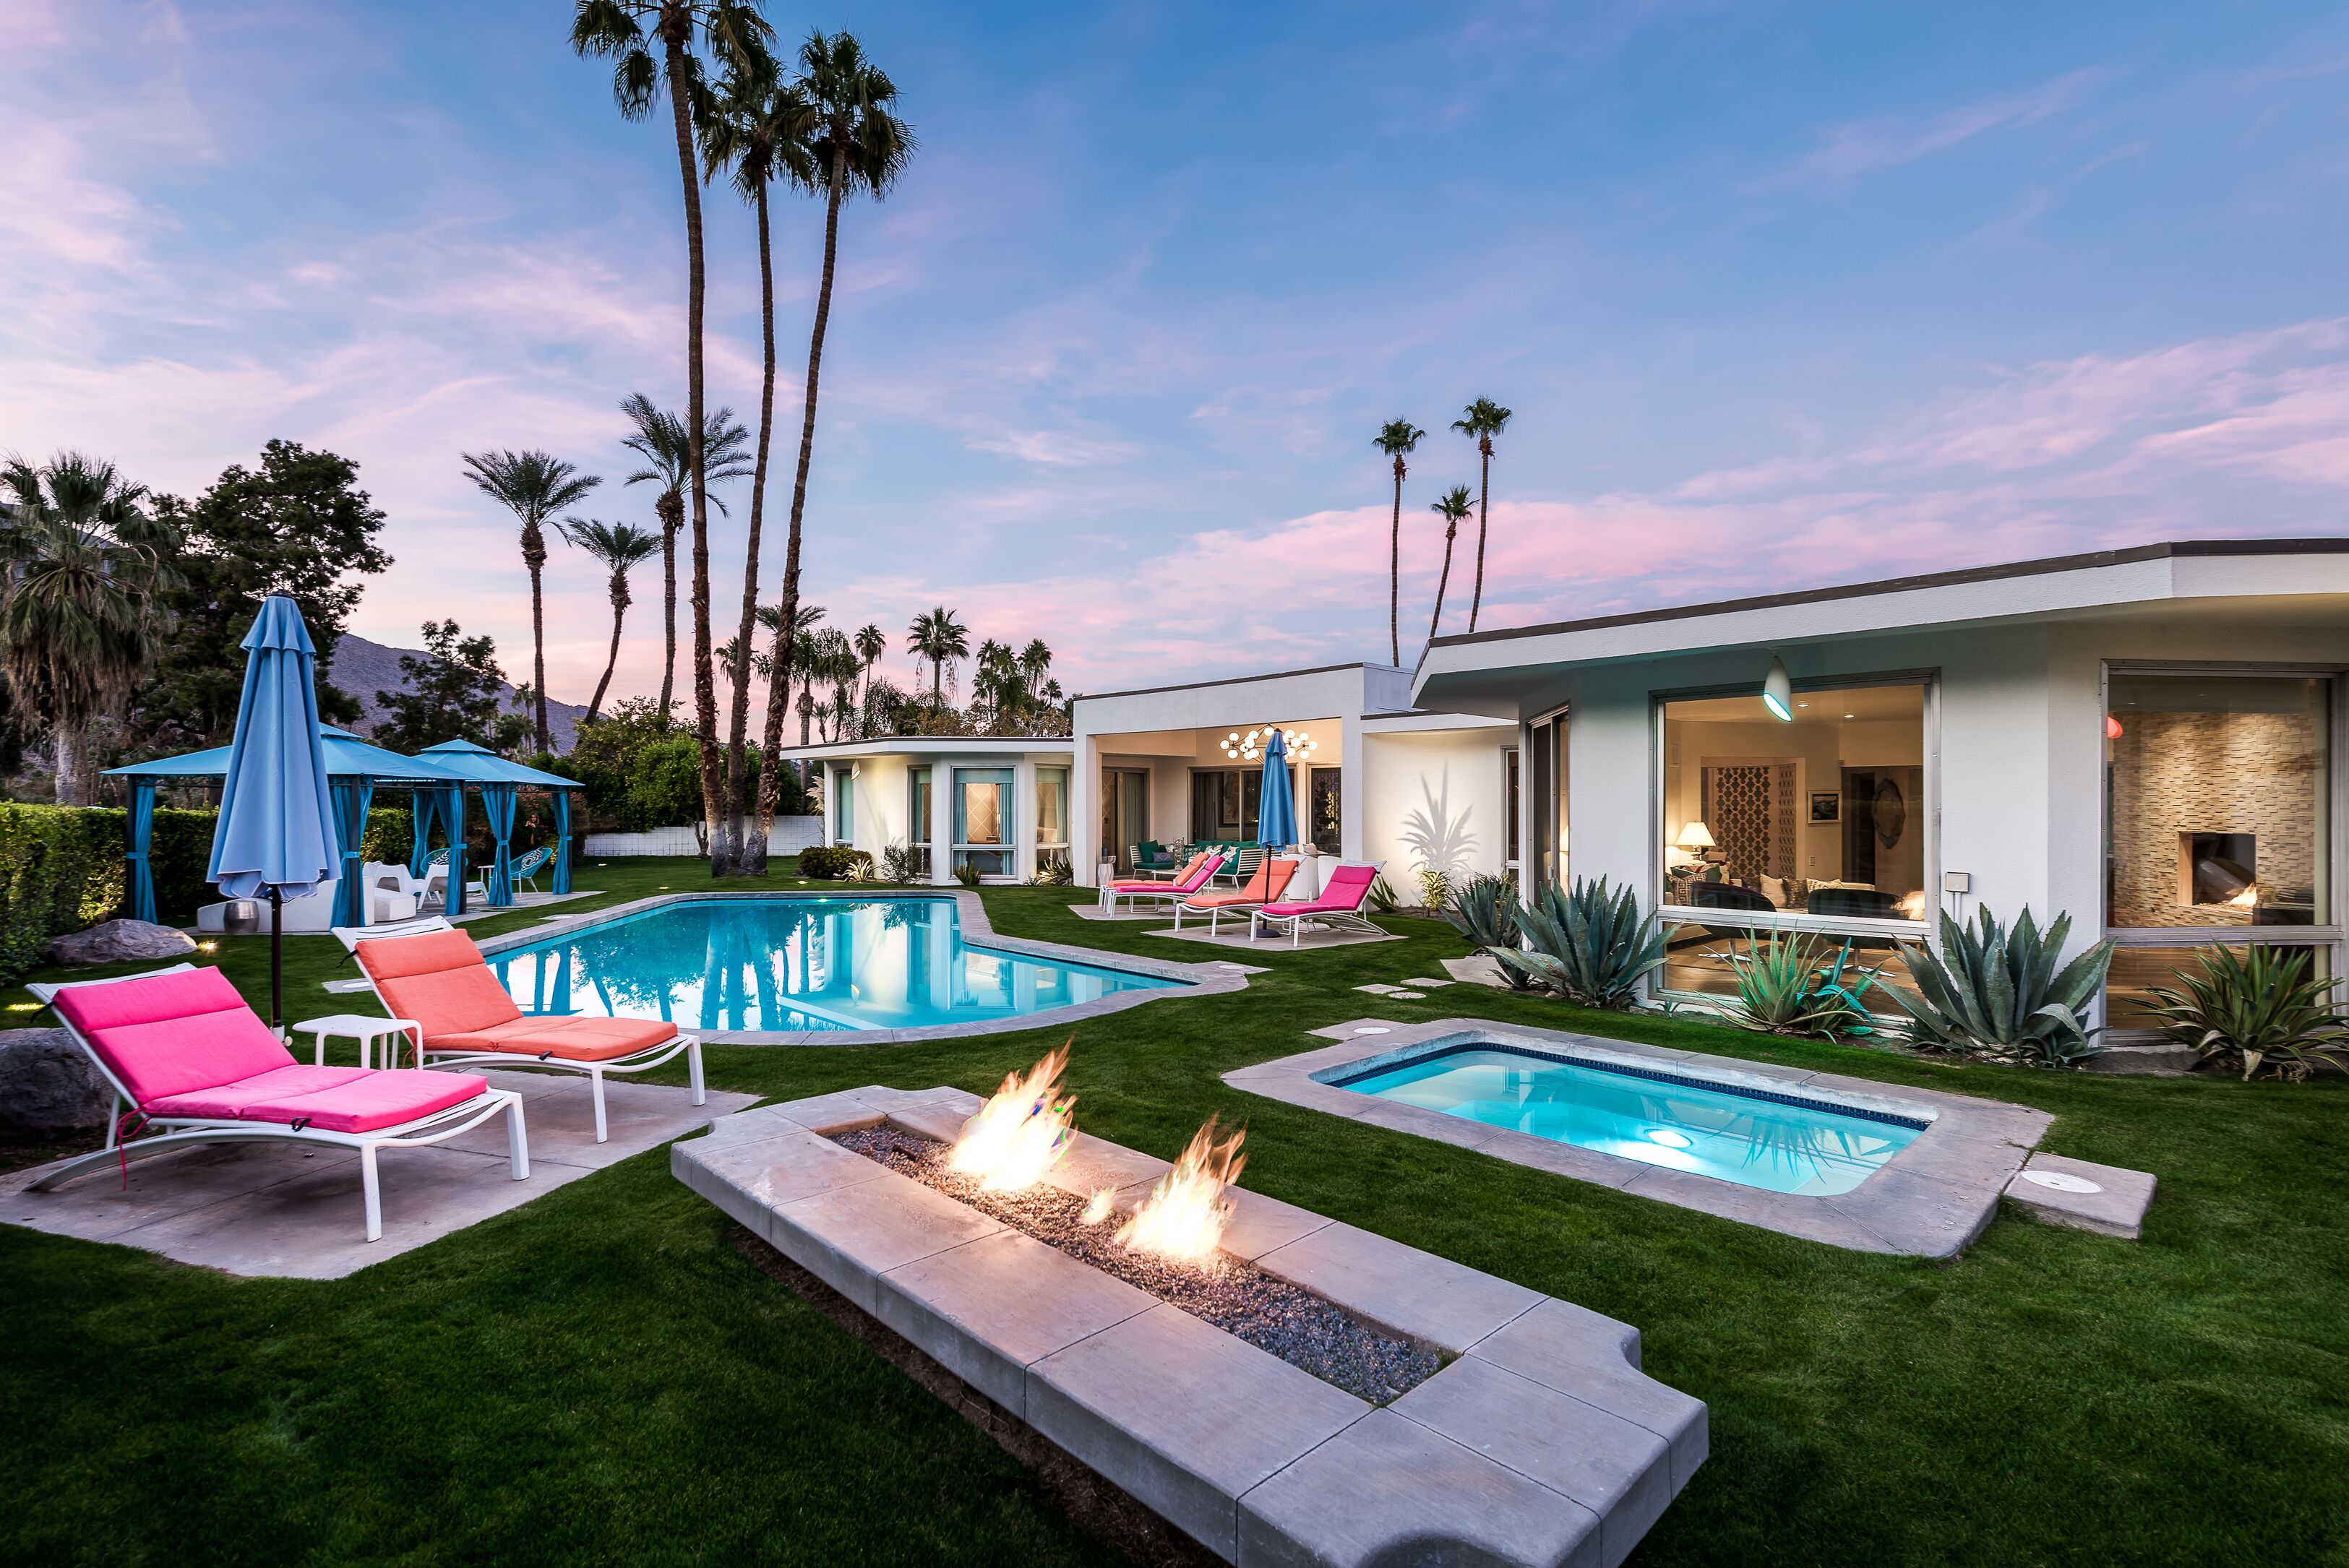 Golf Course Estate All En Suite All King Beds Pool Side Cabanas And Fire Pit Palm Springs Hotelbewertungen 2020 Expedia De